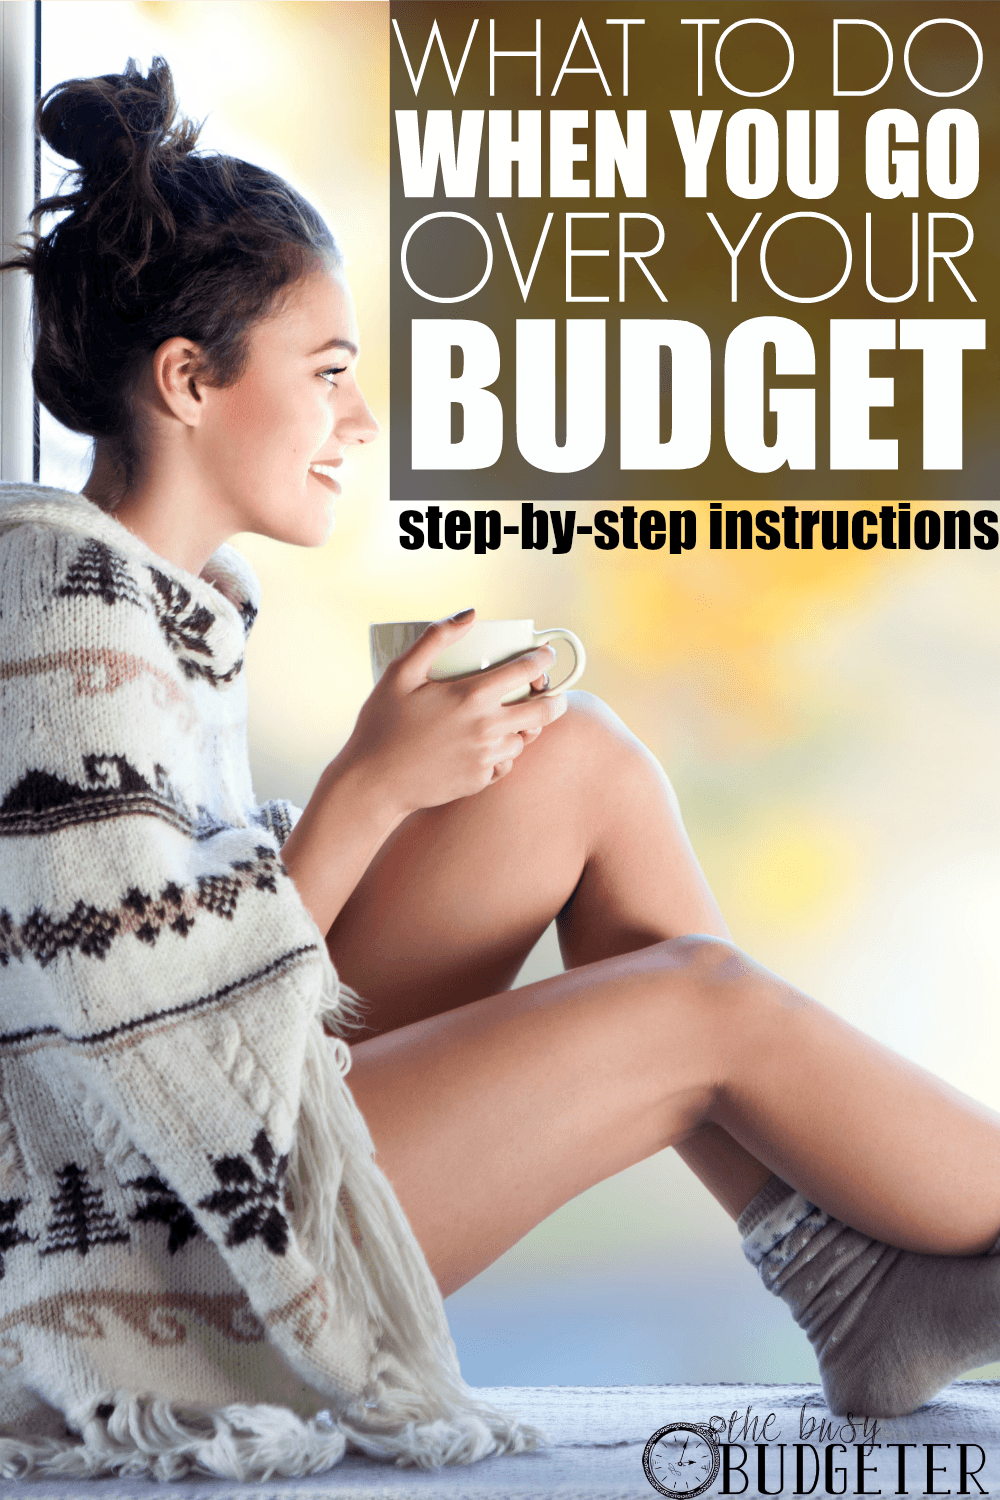 What to do when you go over your budget. ** Perfect timing haha, We've been over budget since Christmas! What a mess! Good Pin- easysteos to take to dig ourselves out of this hole.